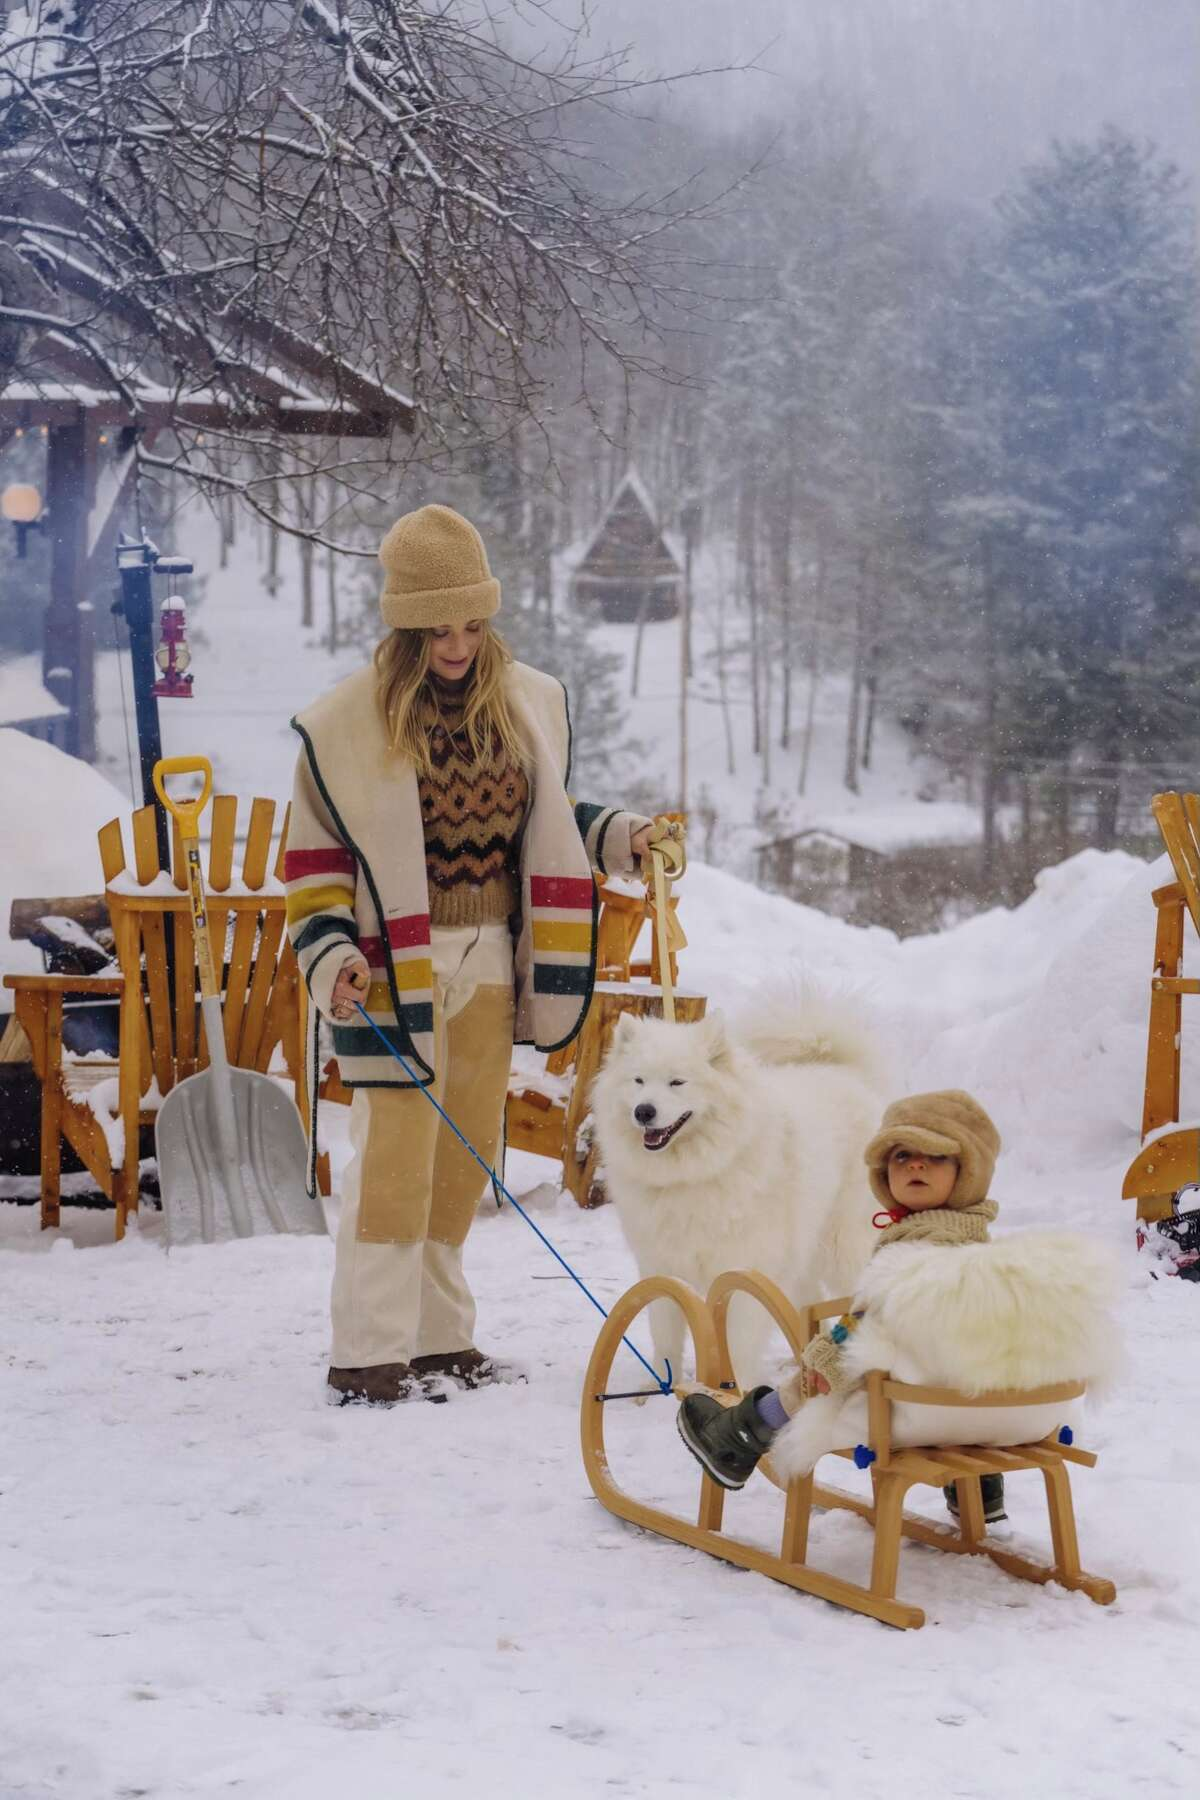 Winter playtime in the Catskills for the whole family at Urban Cowboy.